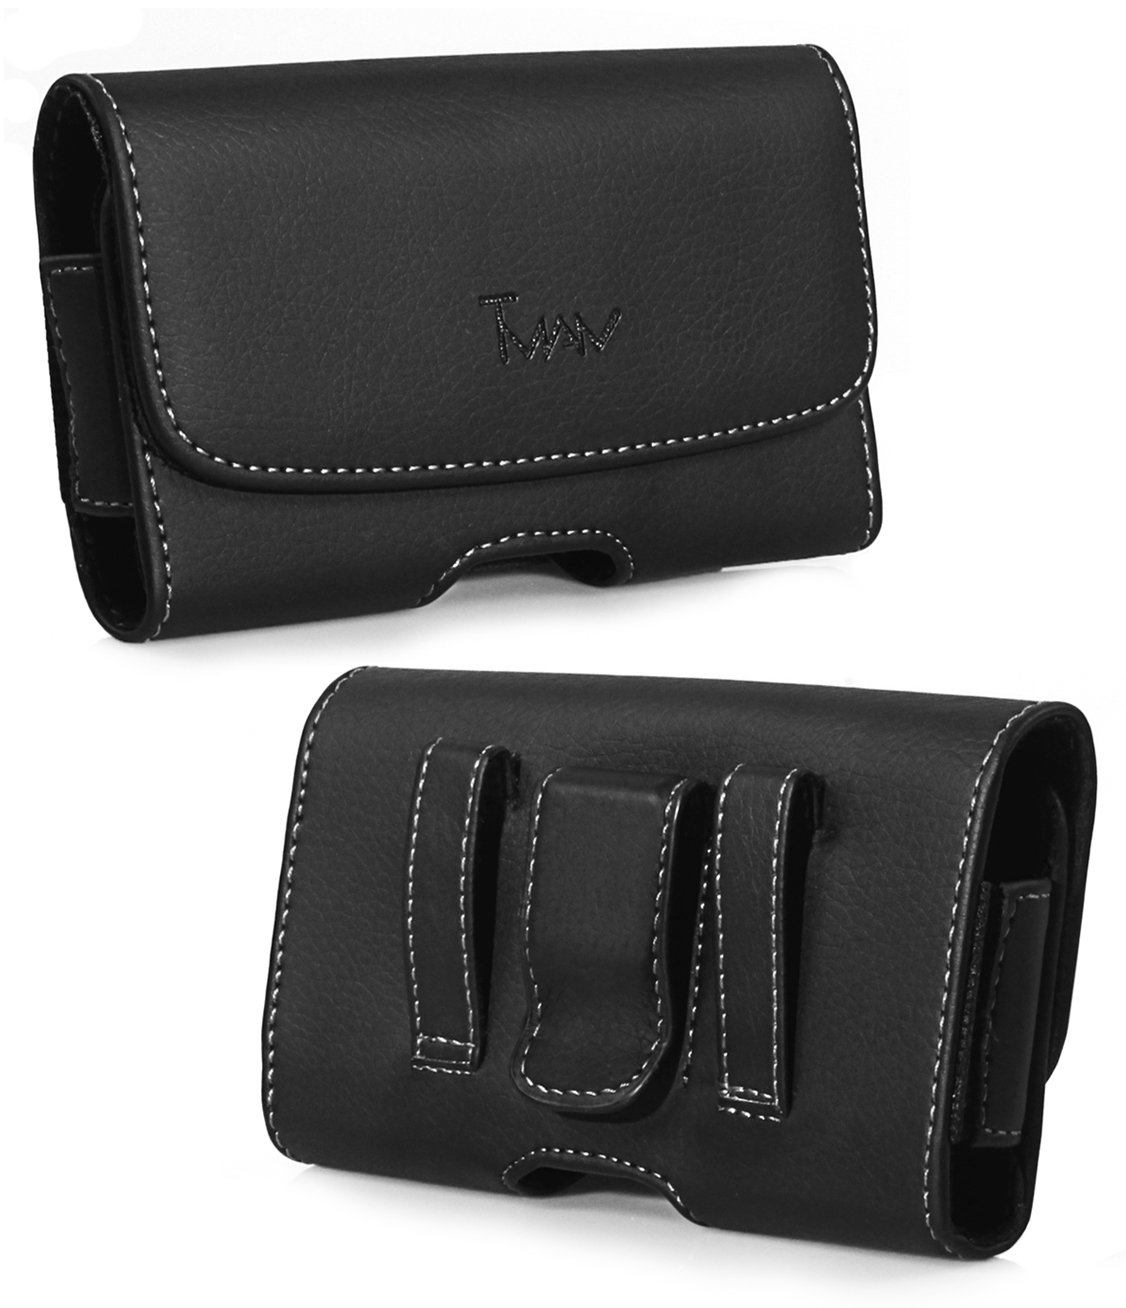 for lg GU295 KM555 Revere 3 VN170 511C KP260 505C Premium Leather Pouch Case Holster with Belt Clip & Belt Loops